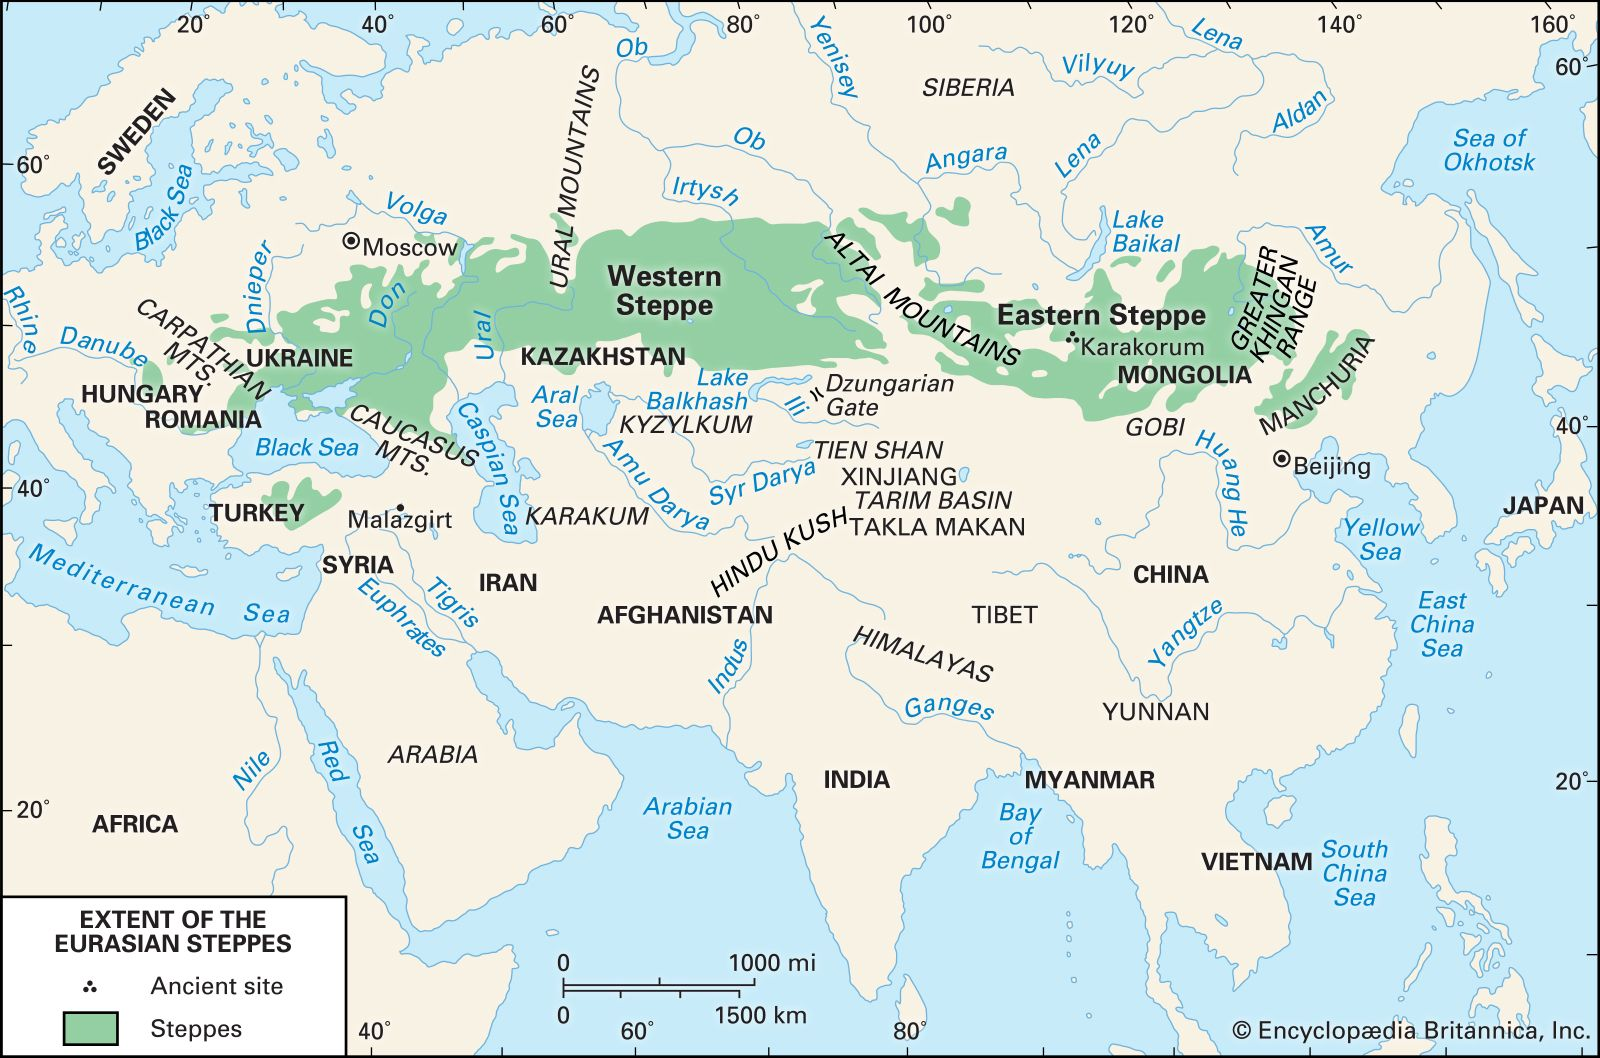 Extent Of The Eurasian Steppes